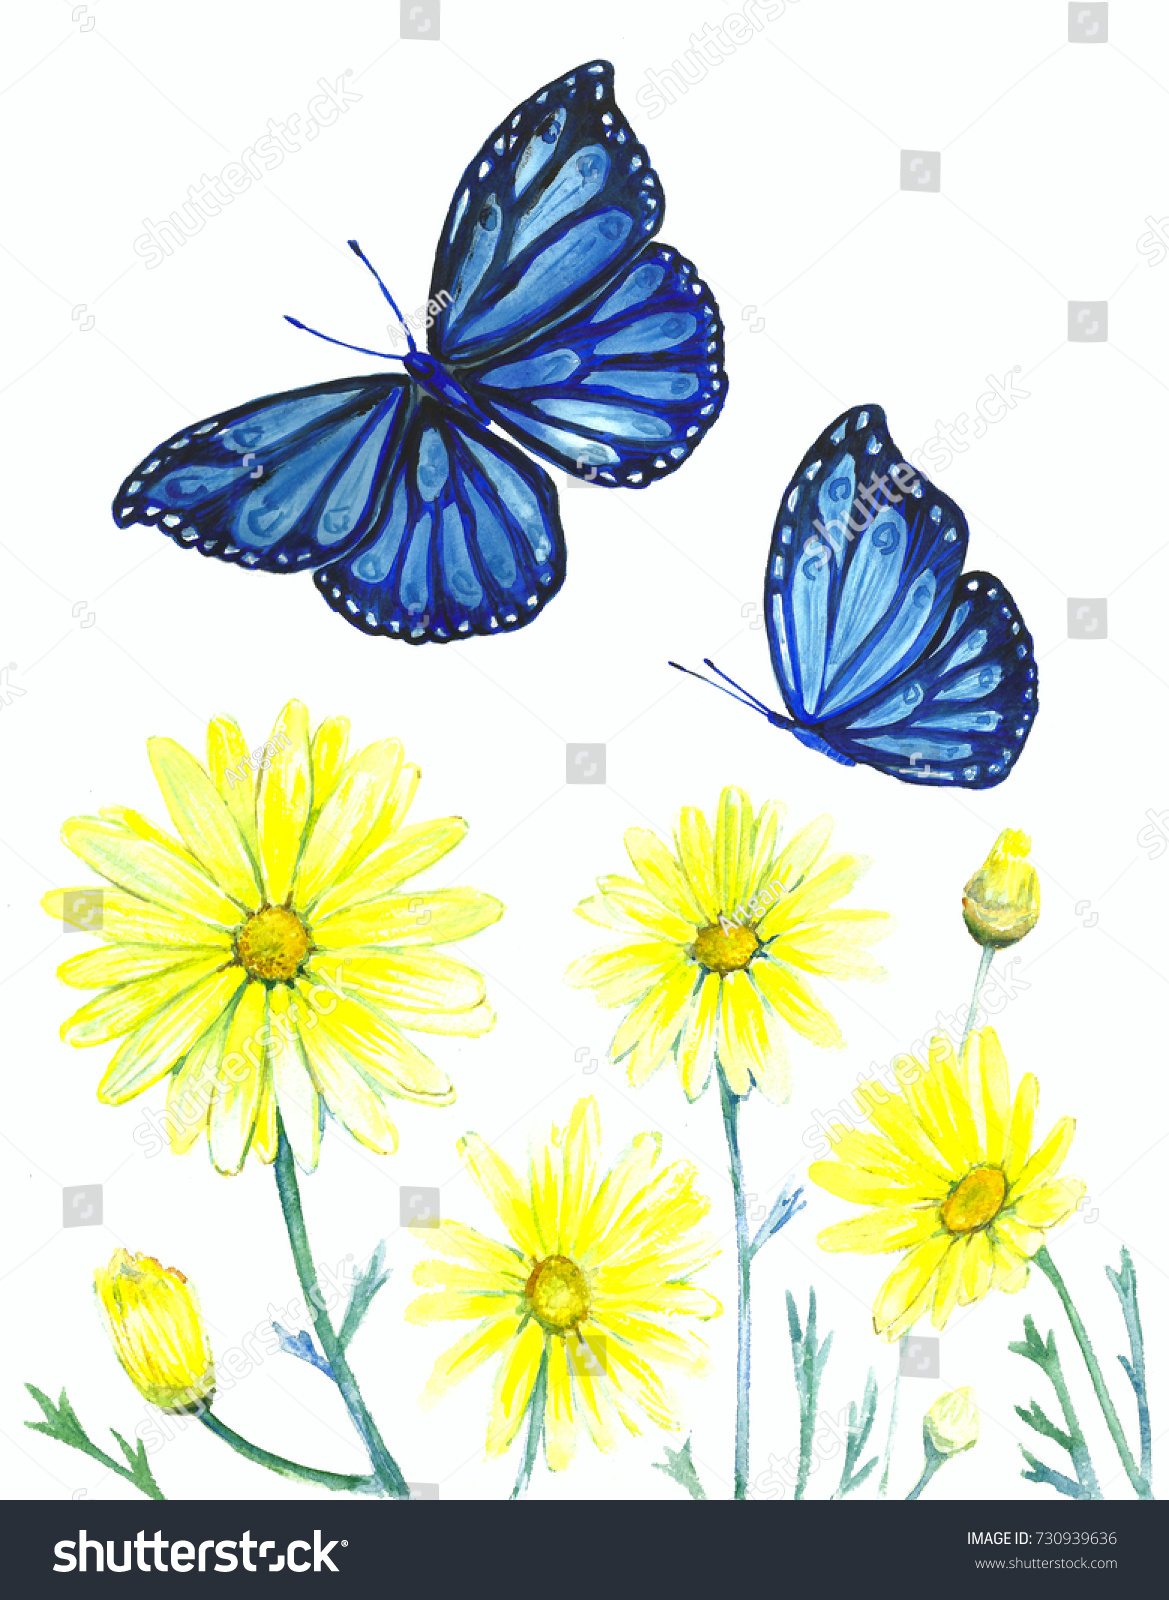 watercolor illustration botanical flowers butterflies drawing